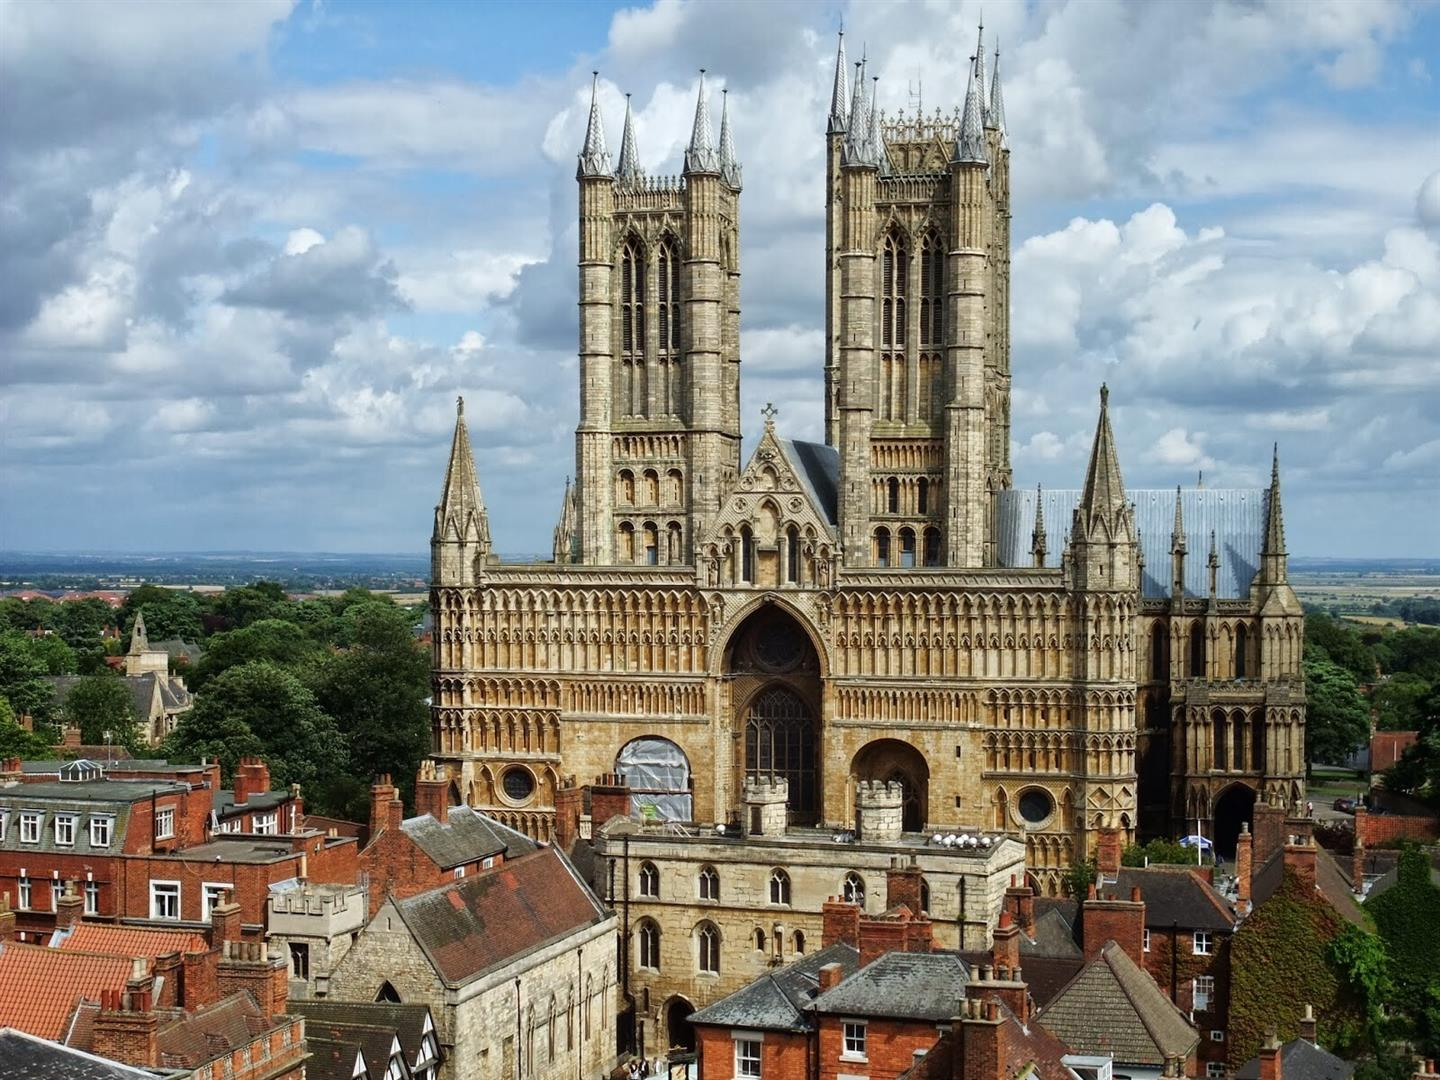 1440x1080 Lincoln Cathedral The Lincoln Imp in Country England UK HD Tourist Place Wallpapers